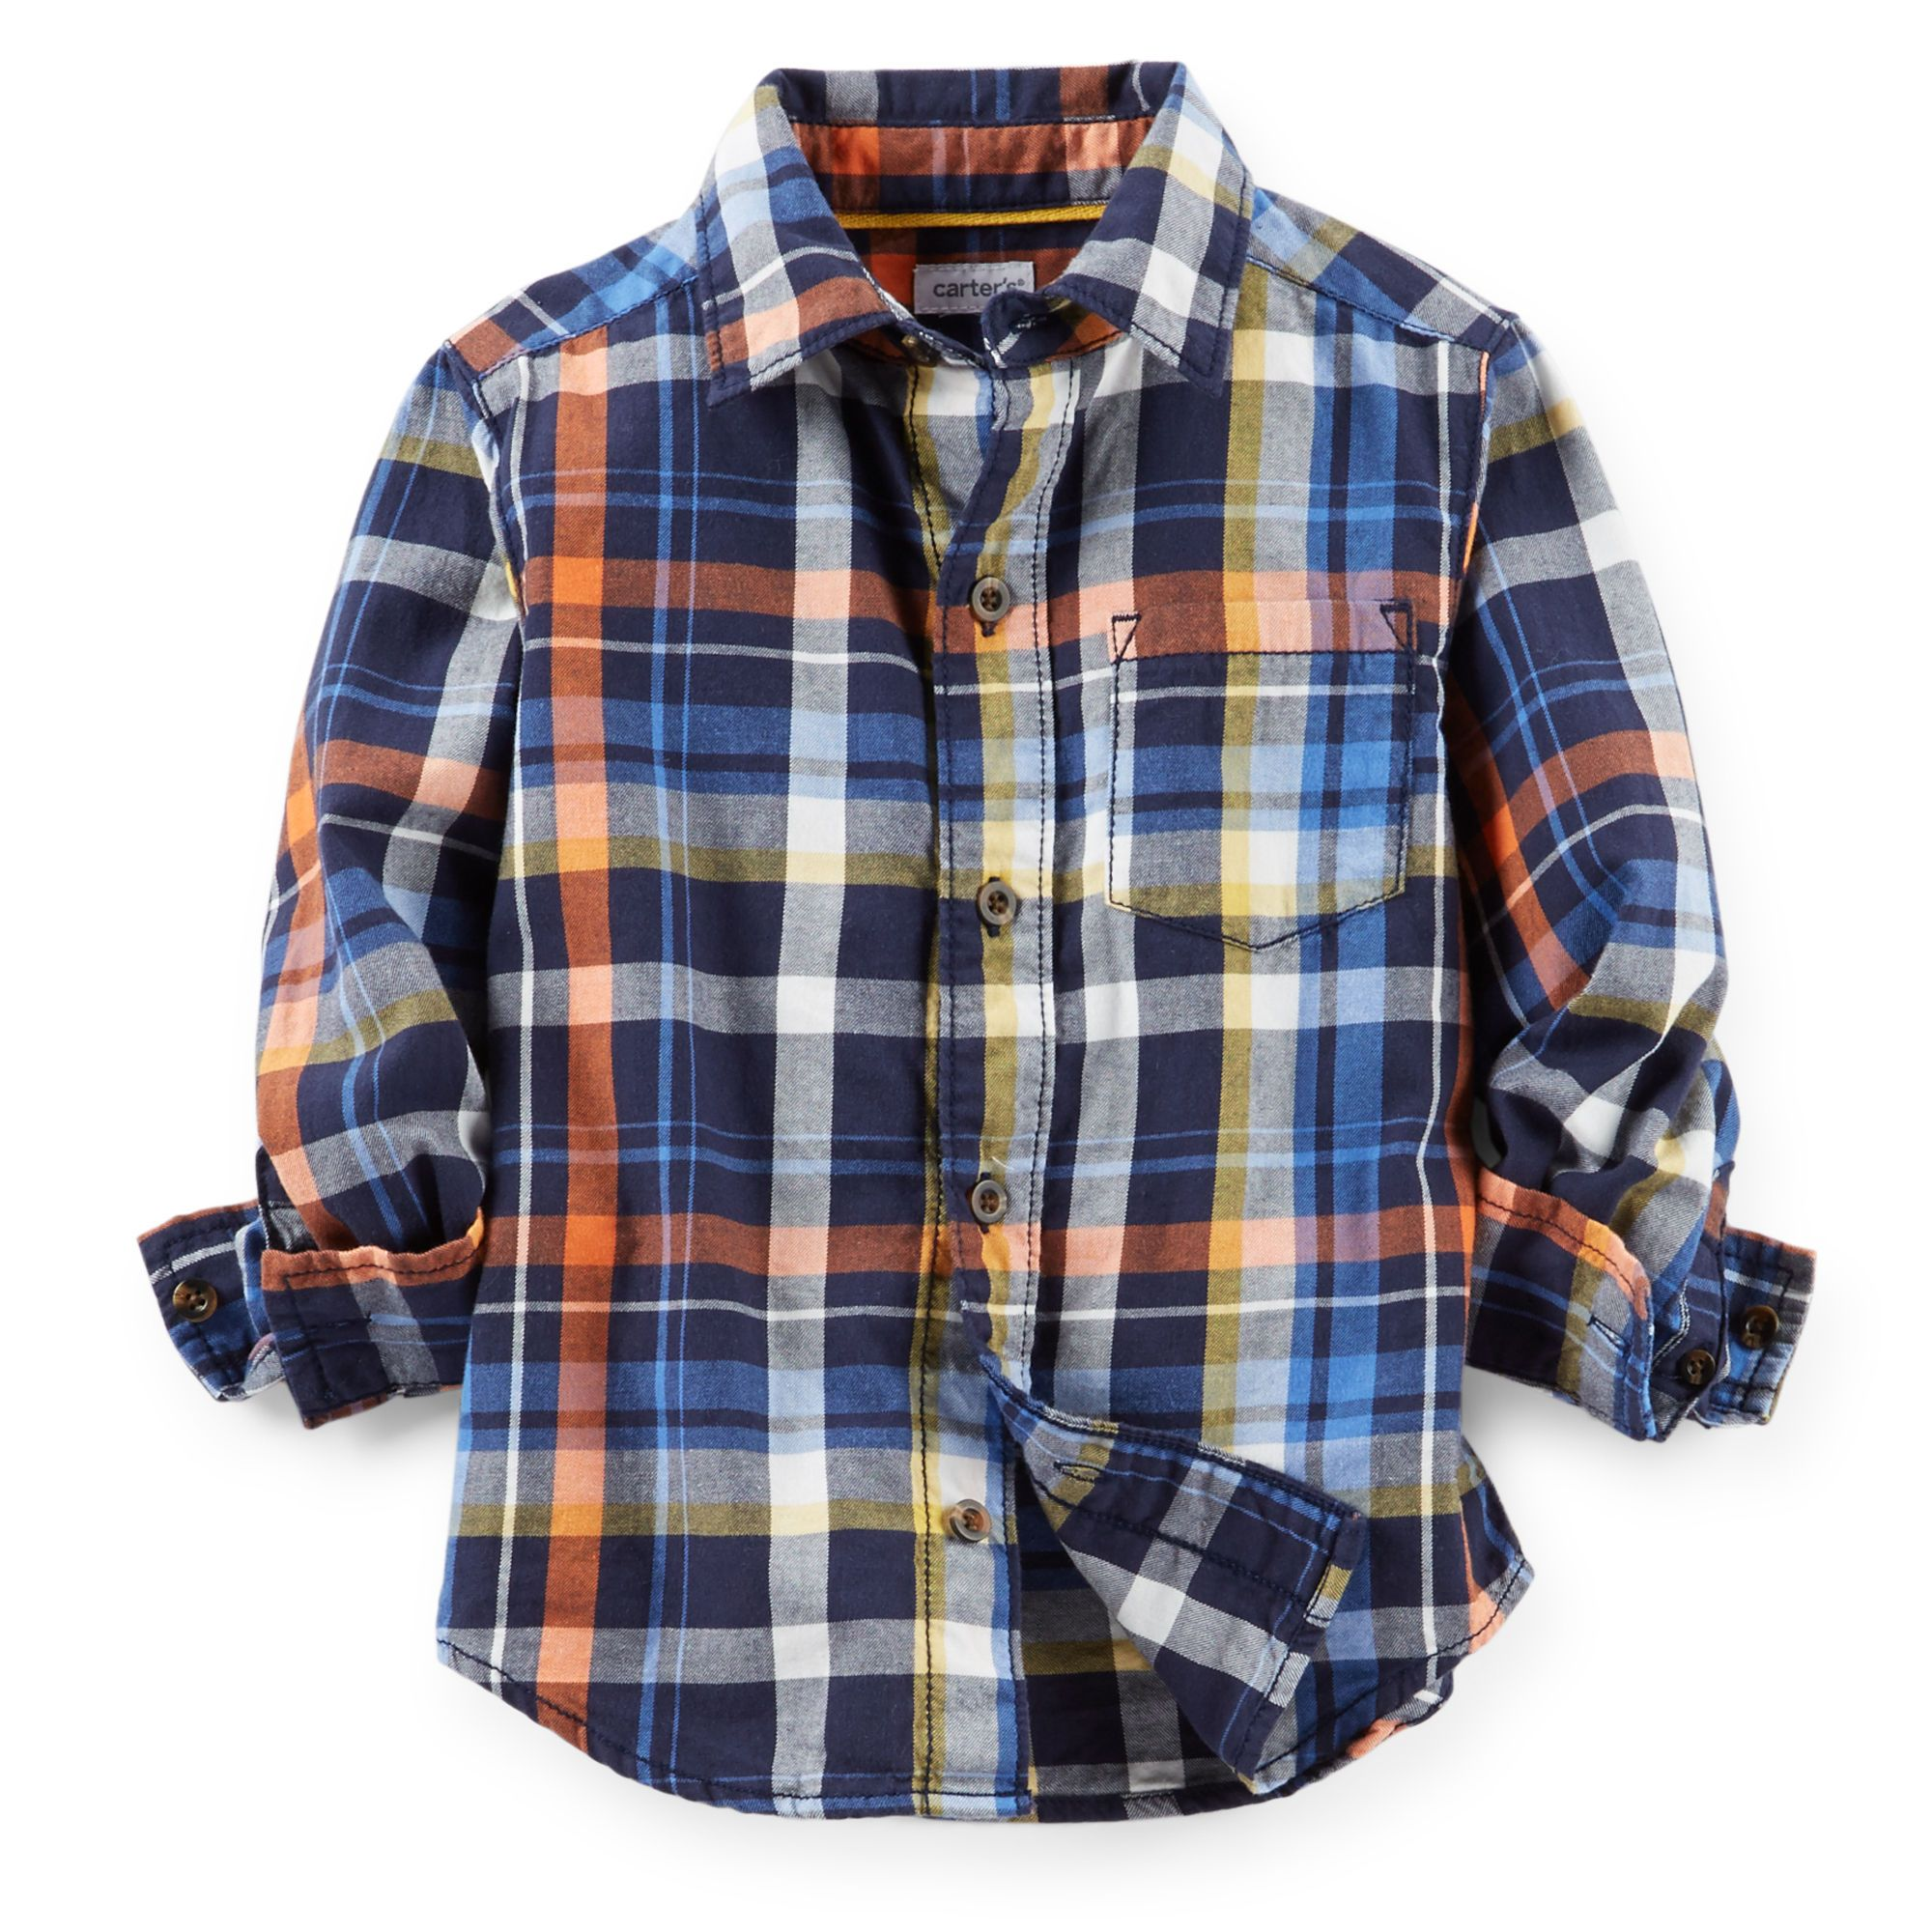 Orange flannel jacket  For my son with gray pants possibly a tan cardigan if itus cool